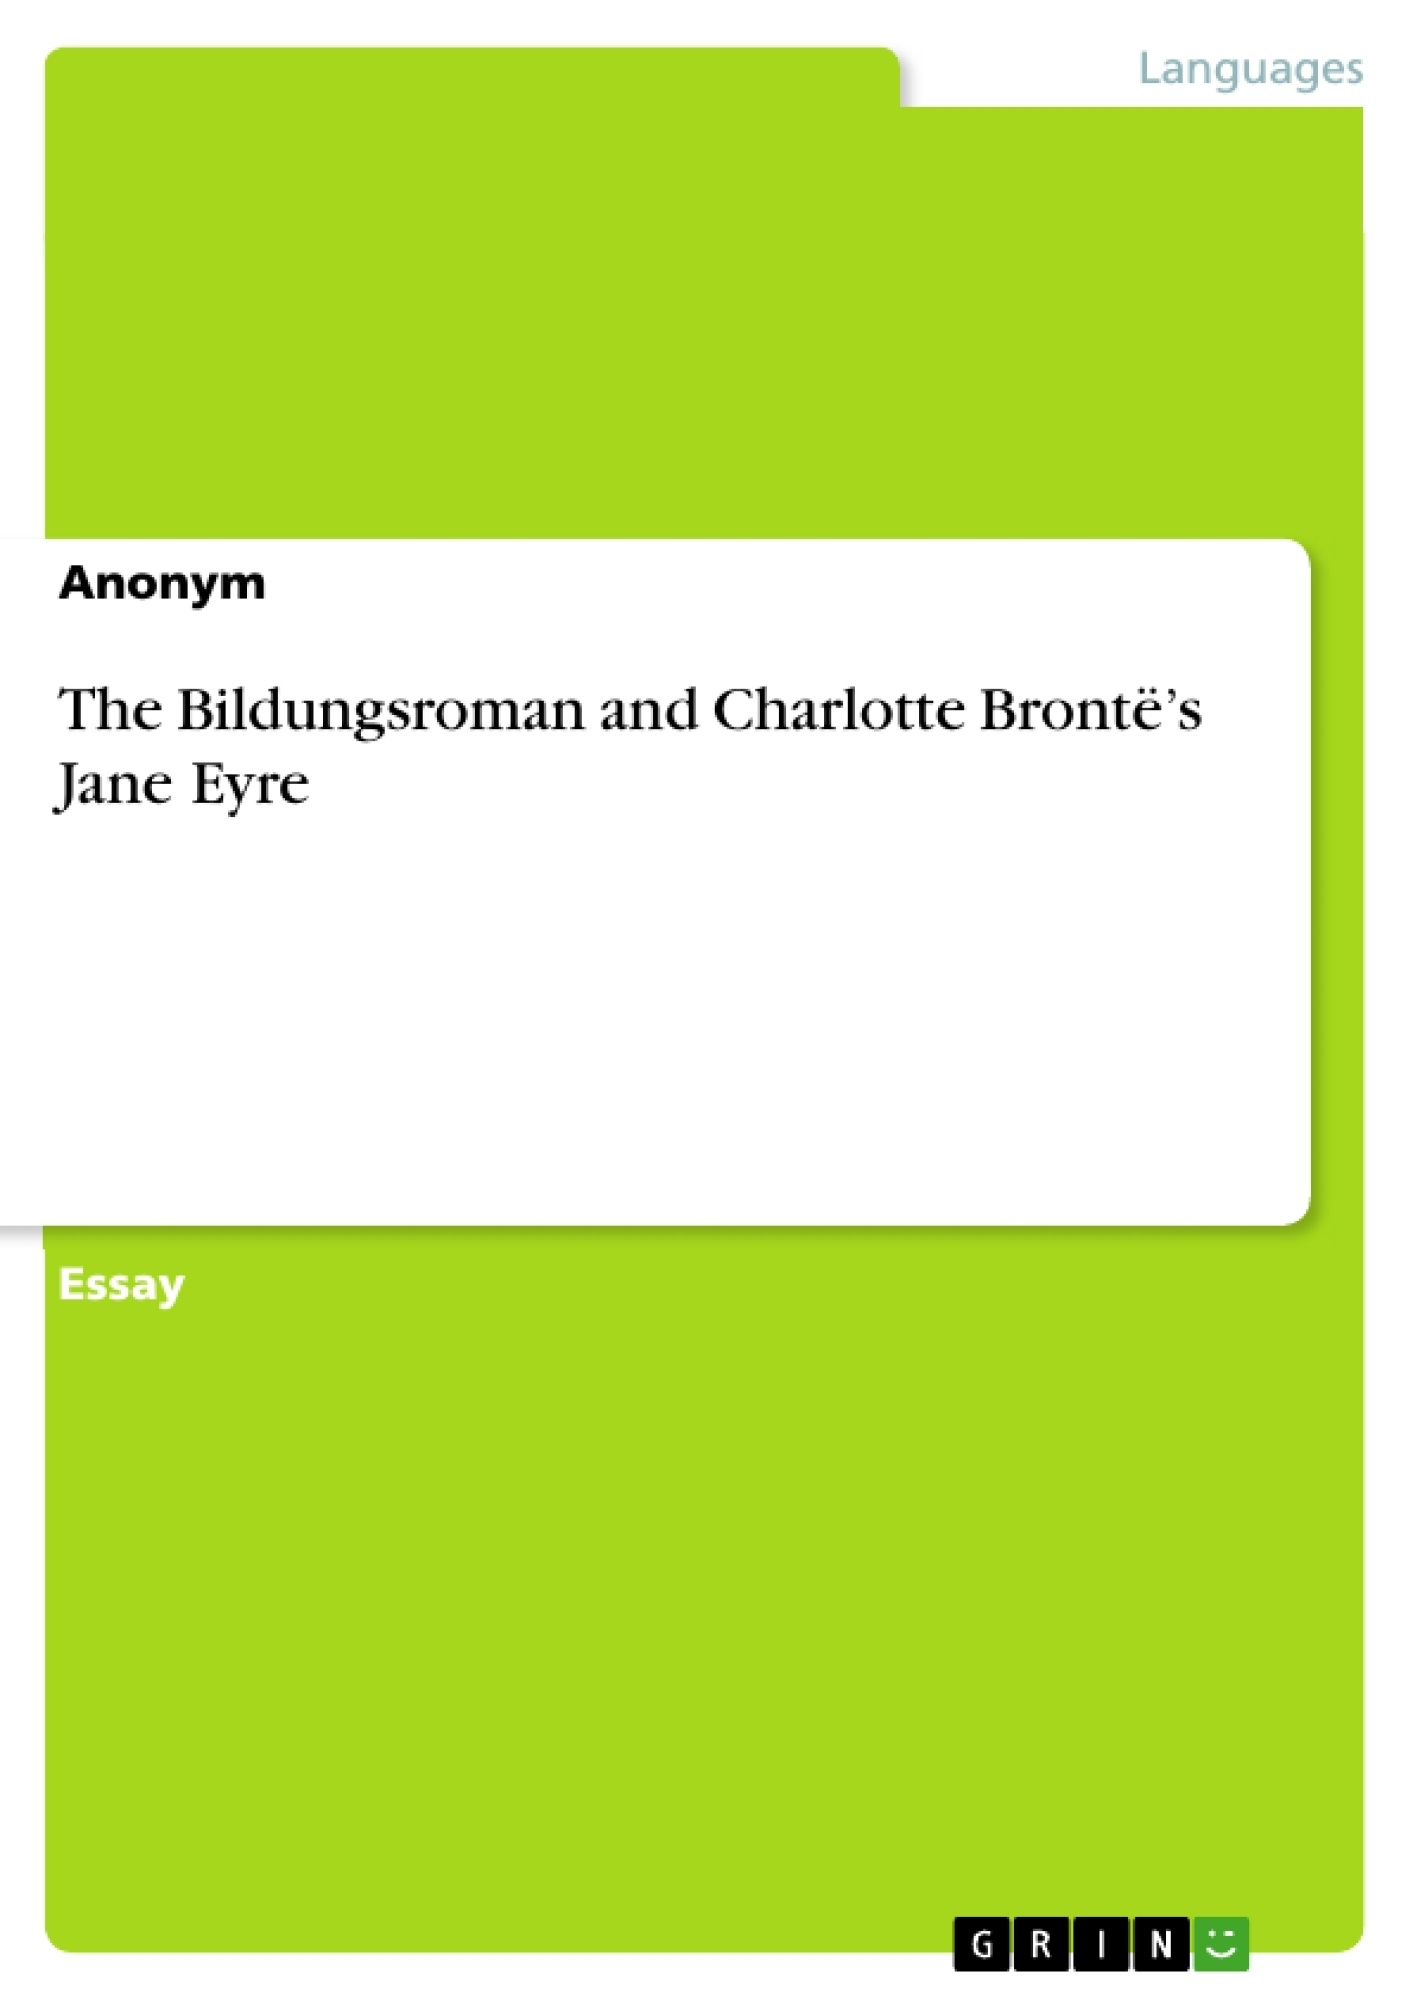 essays on jane eyre jane eyre dover thrift editions charlotte  the bildungsr and charlotte bront euml s jane eyre publish your the bildungsr and charlotte bronteuml essay com